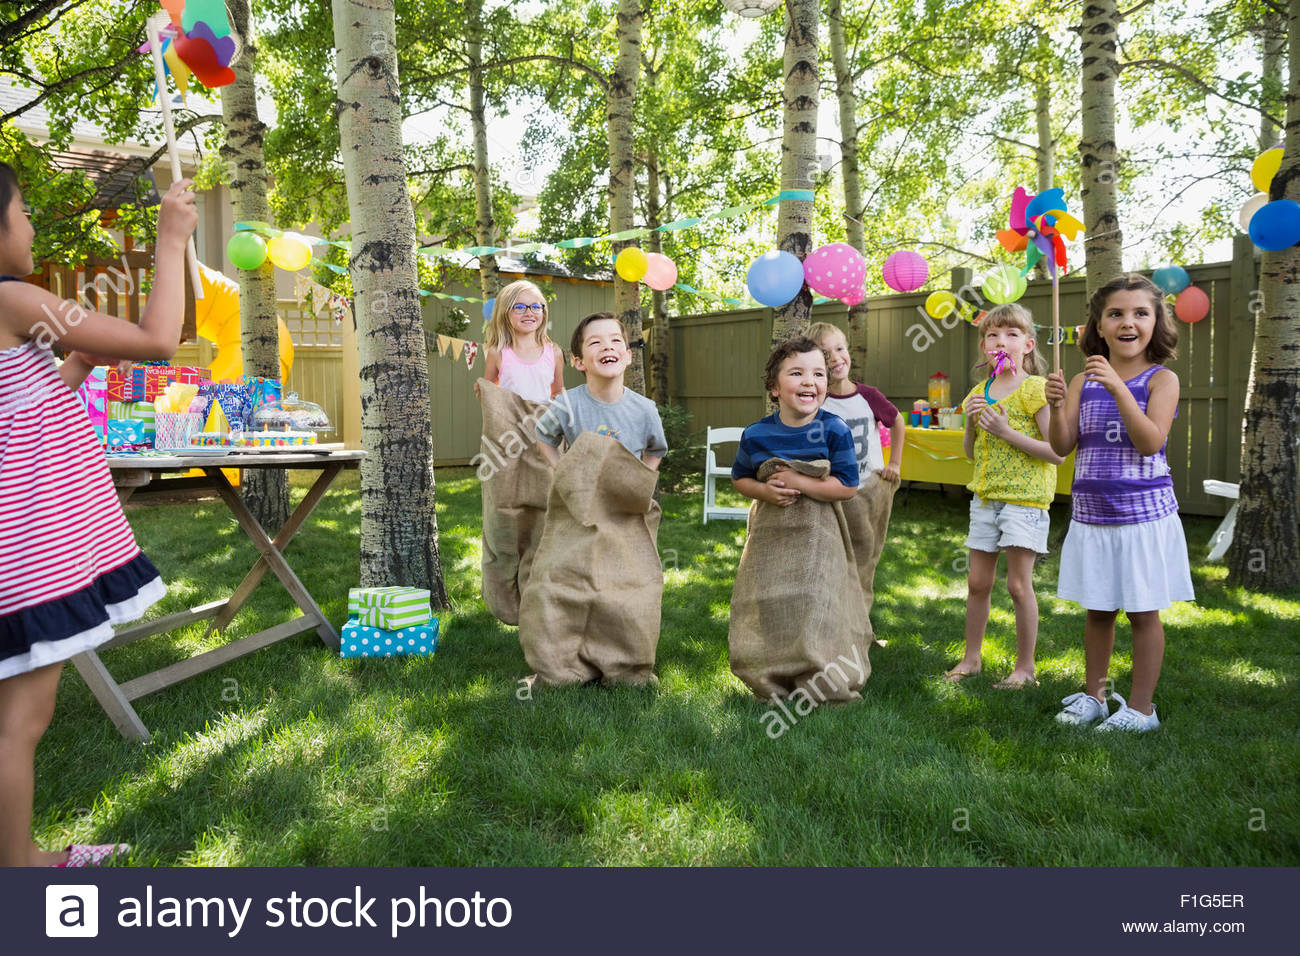 Kids enjoying sack race at backyard birthday party - Stock Image